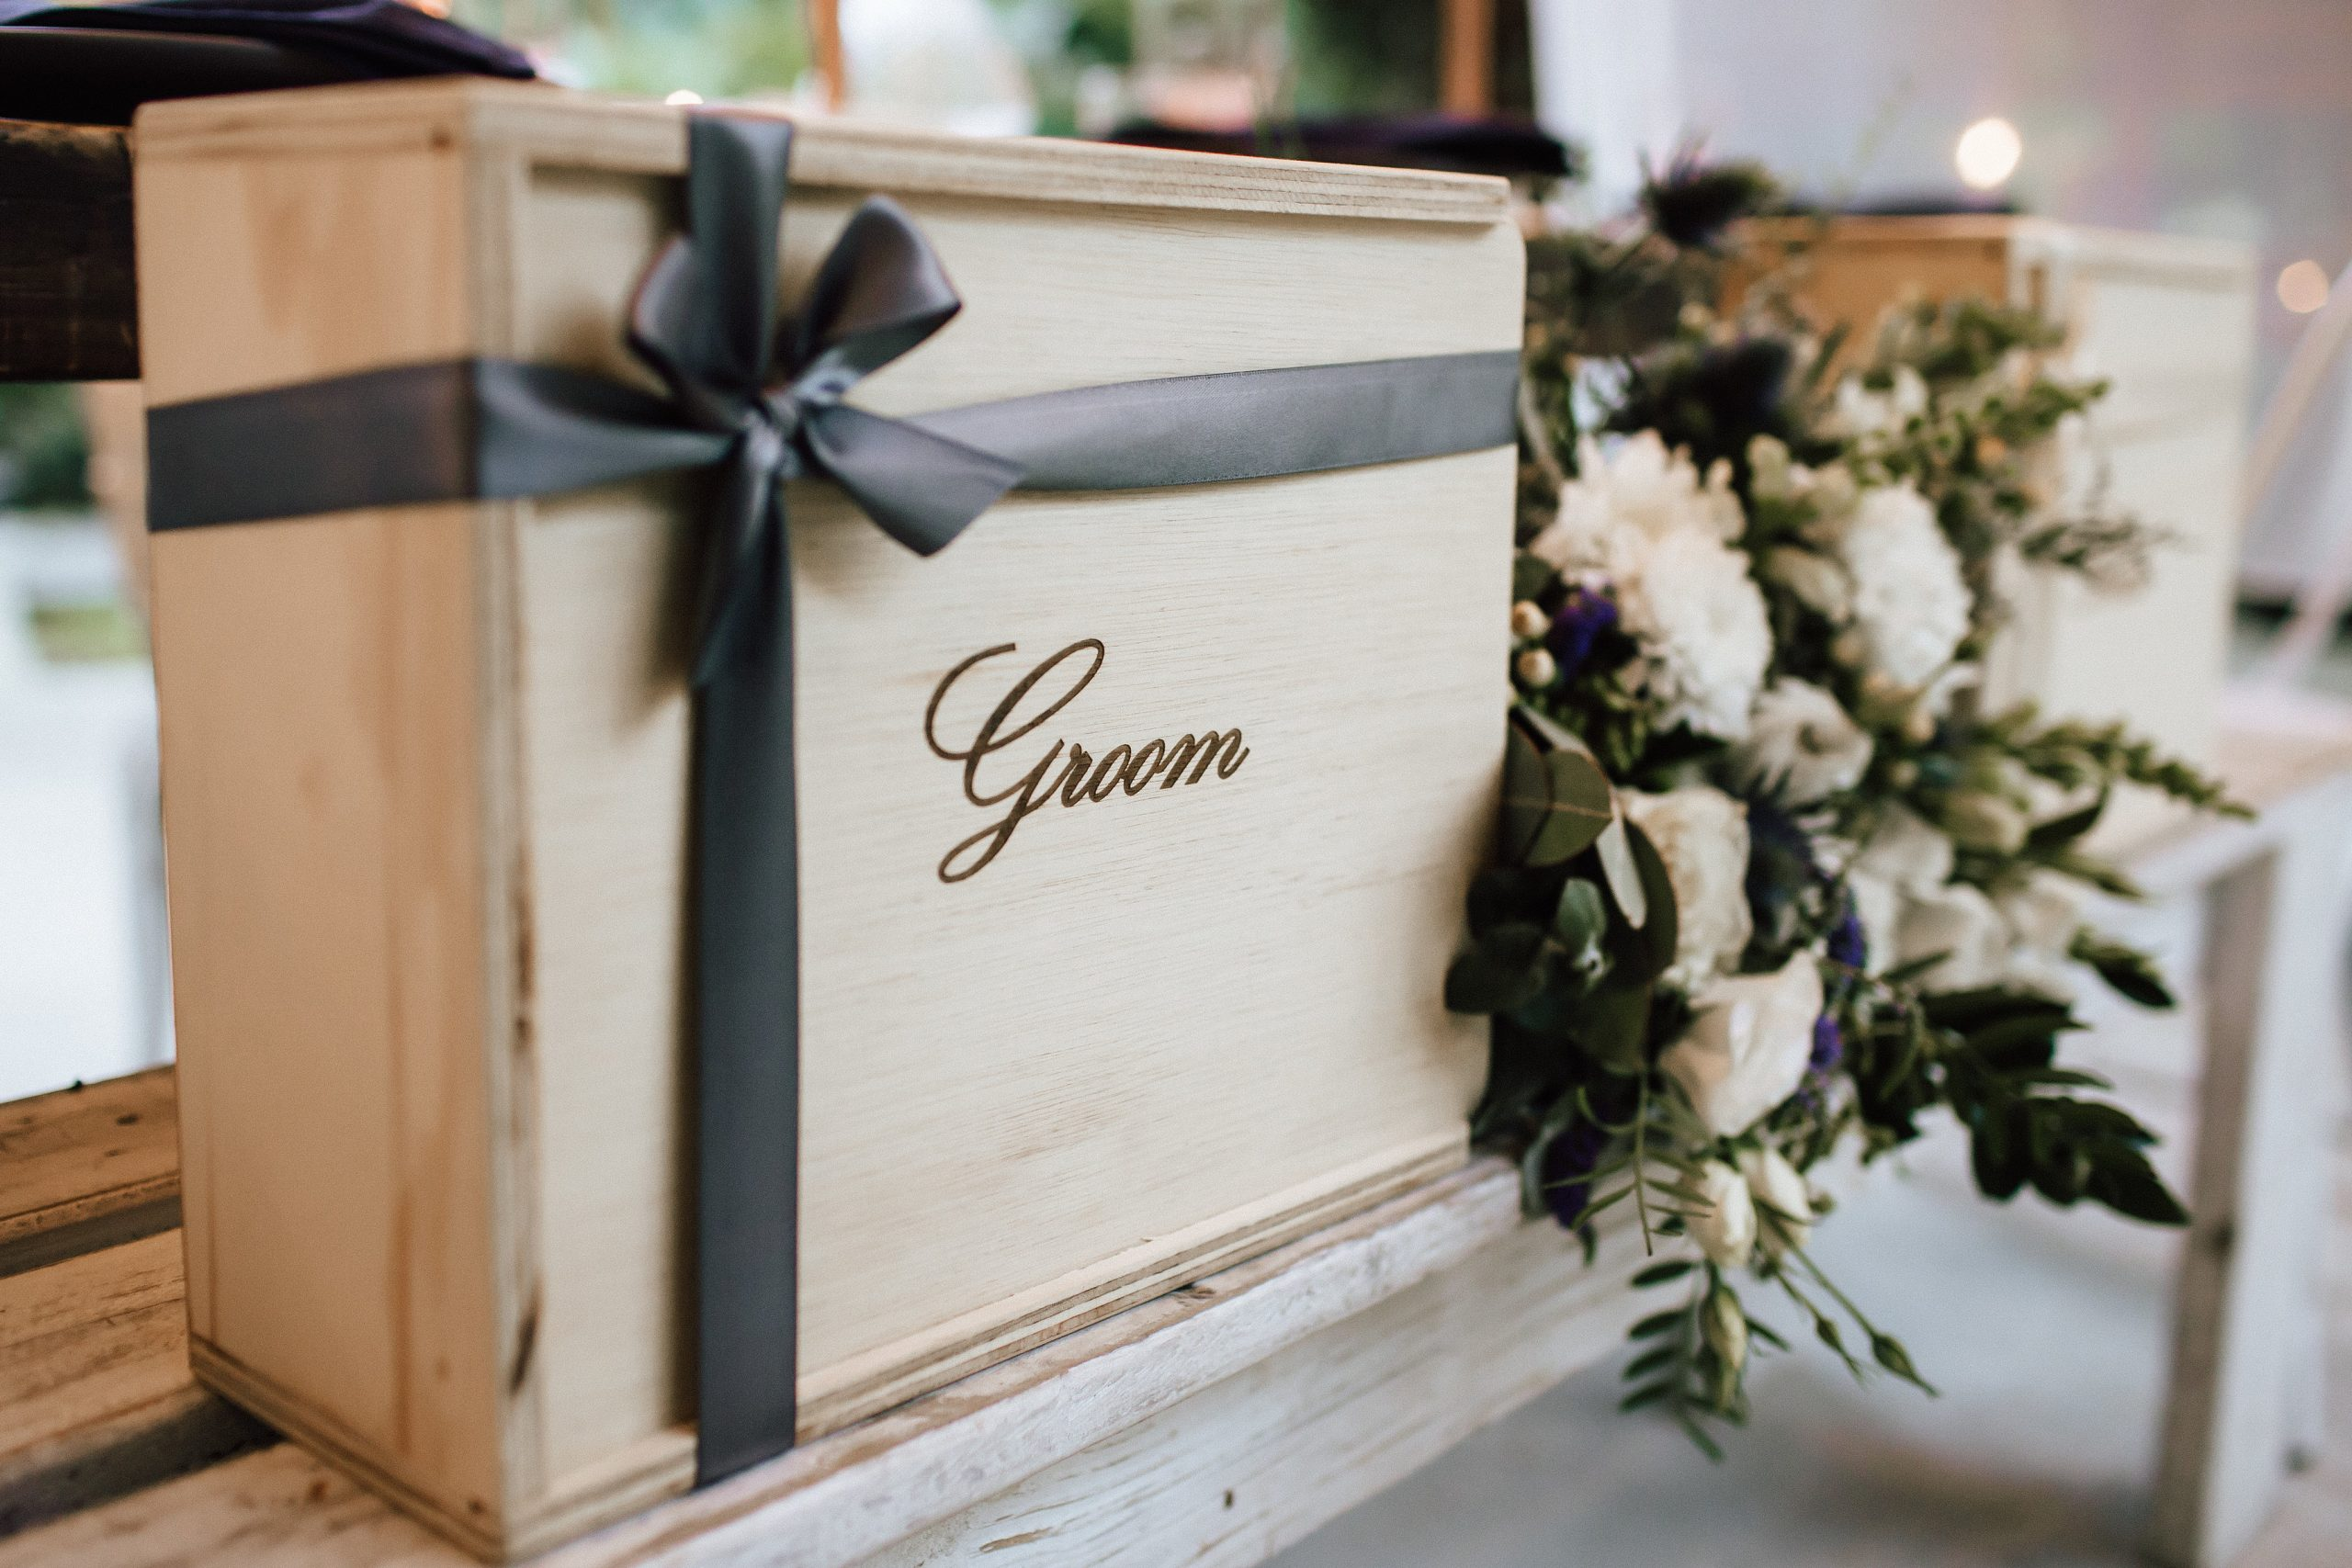 groomgift box from The Bridal Box